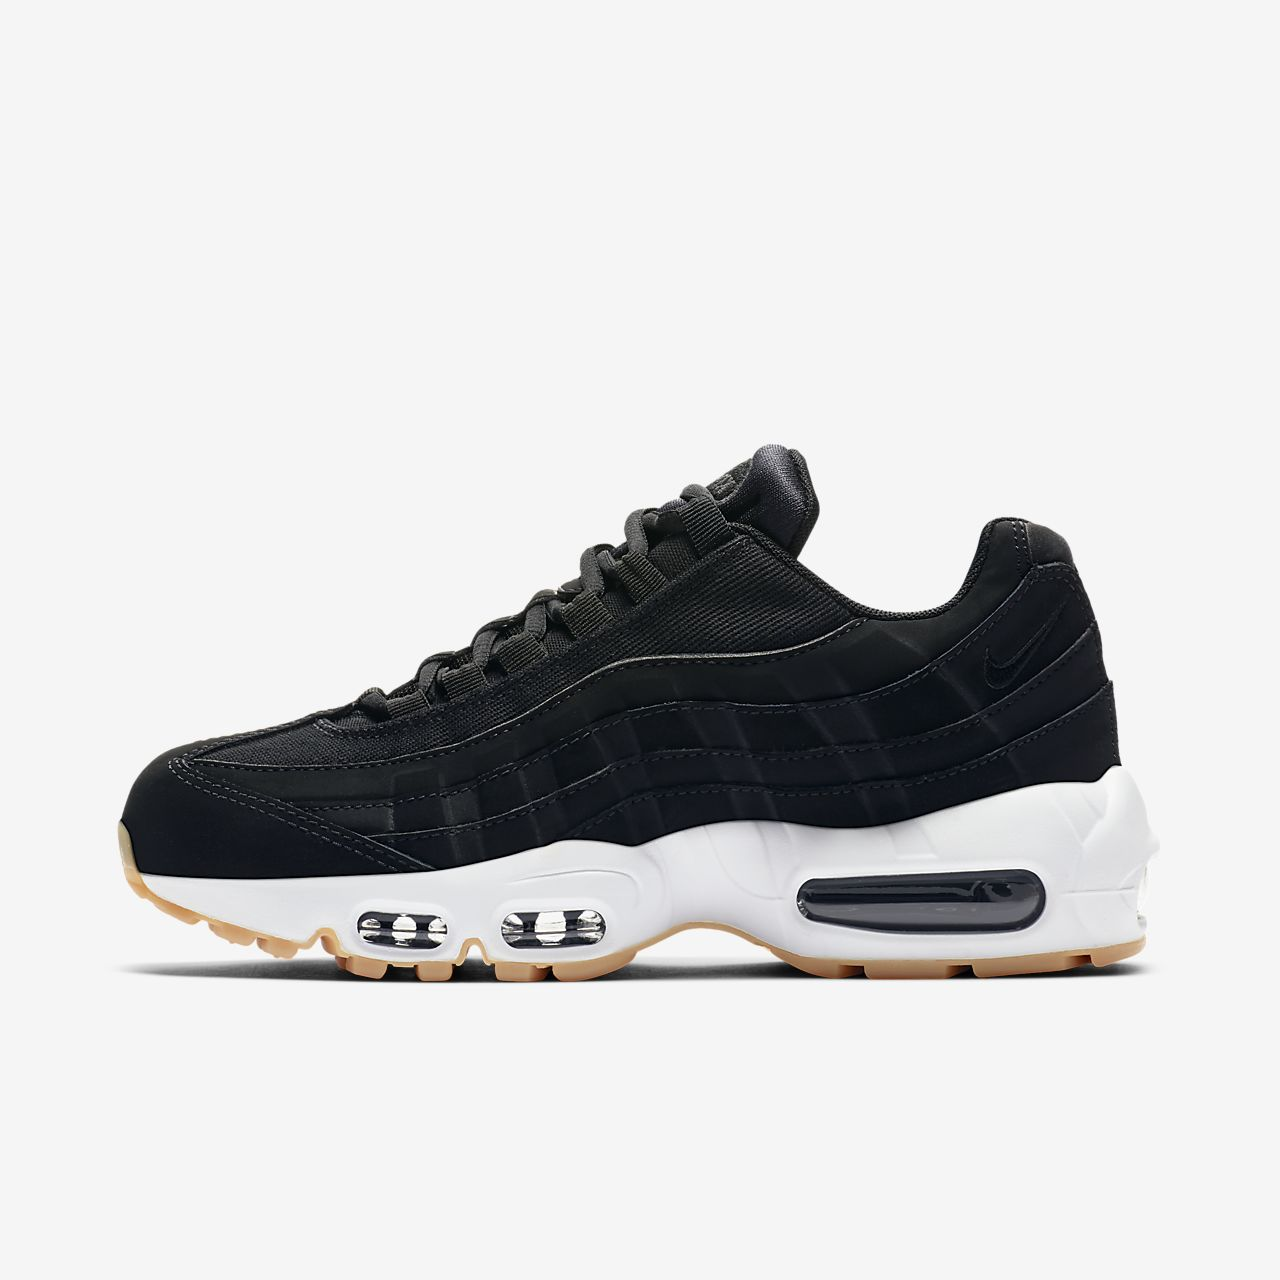 info for cd90c 84a37 Nike Air Max 95 OG Damenschuh